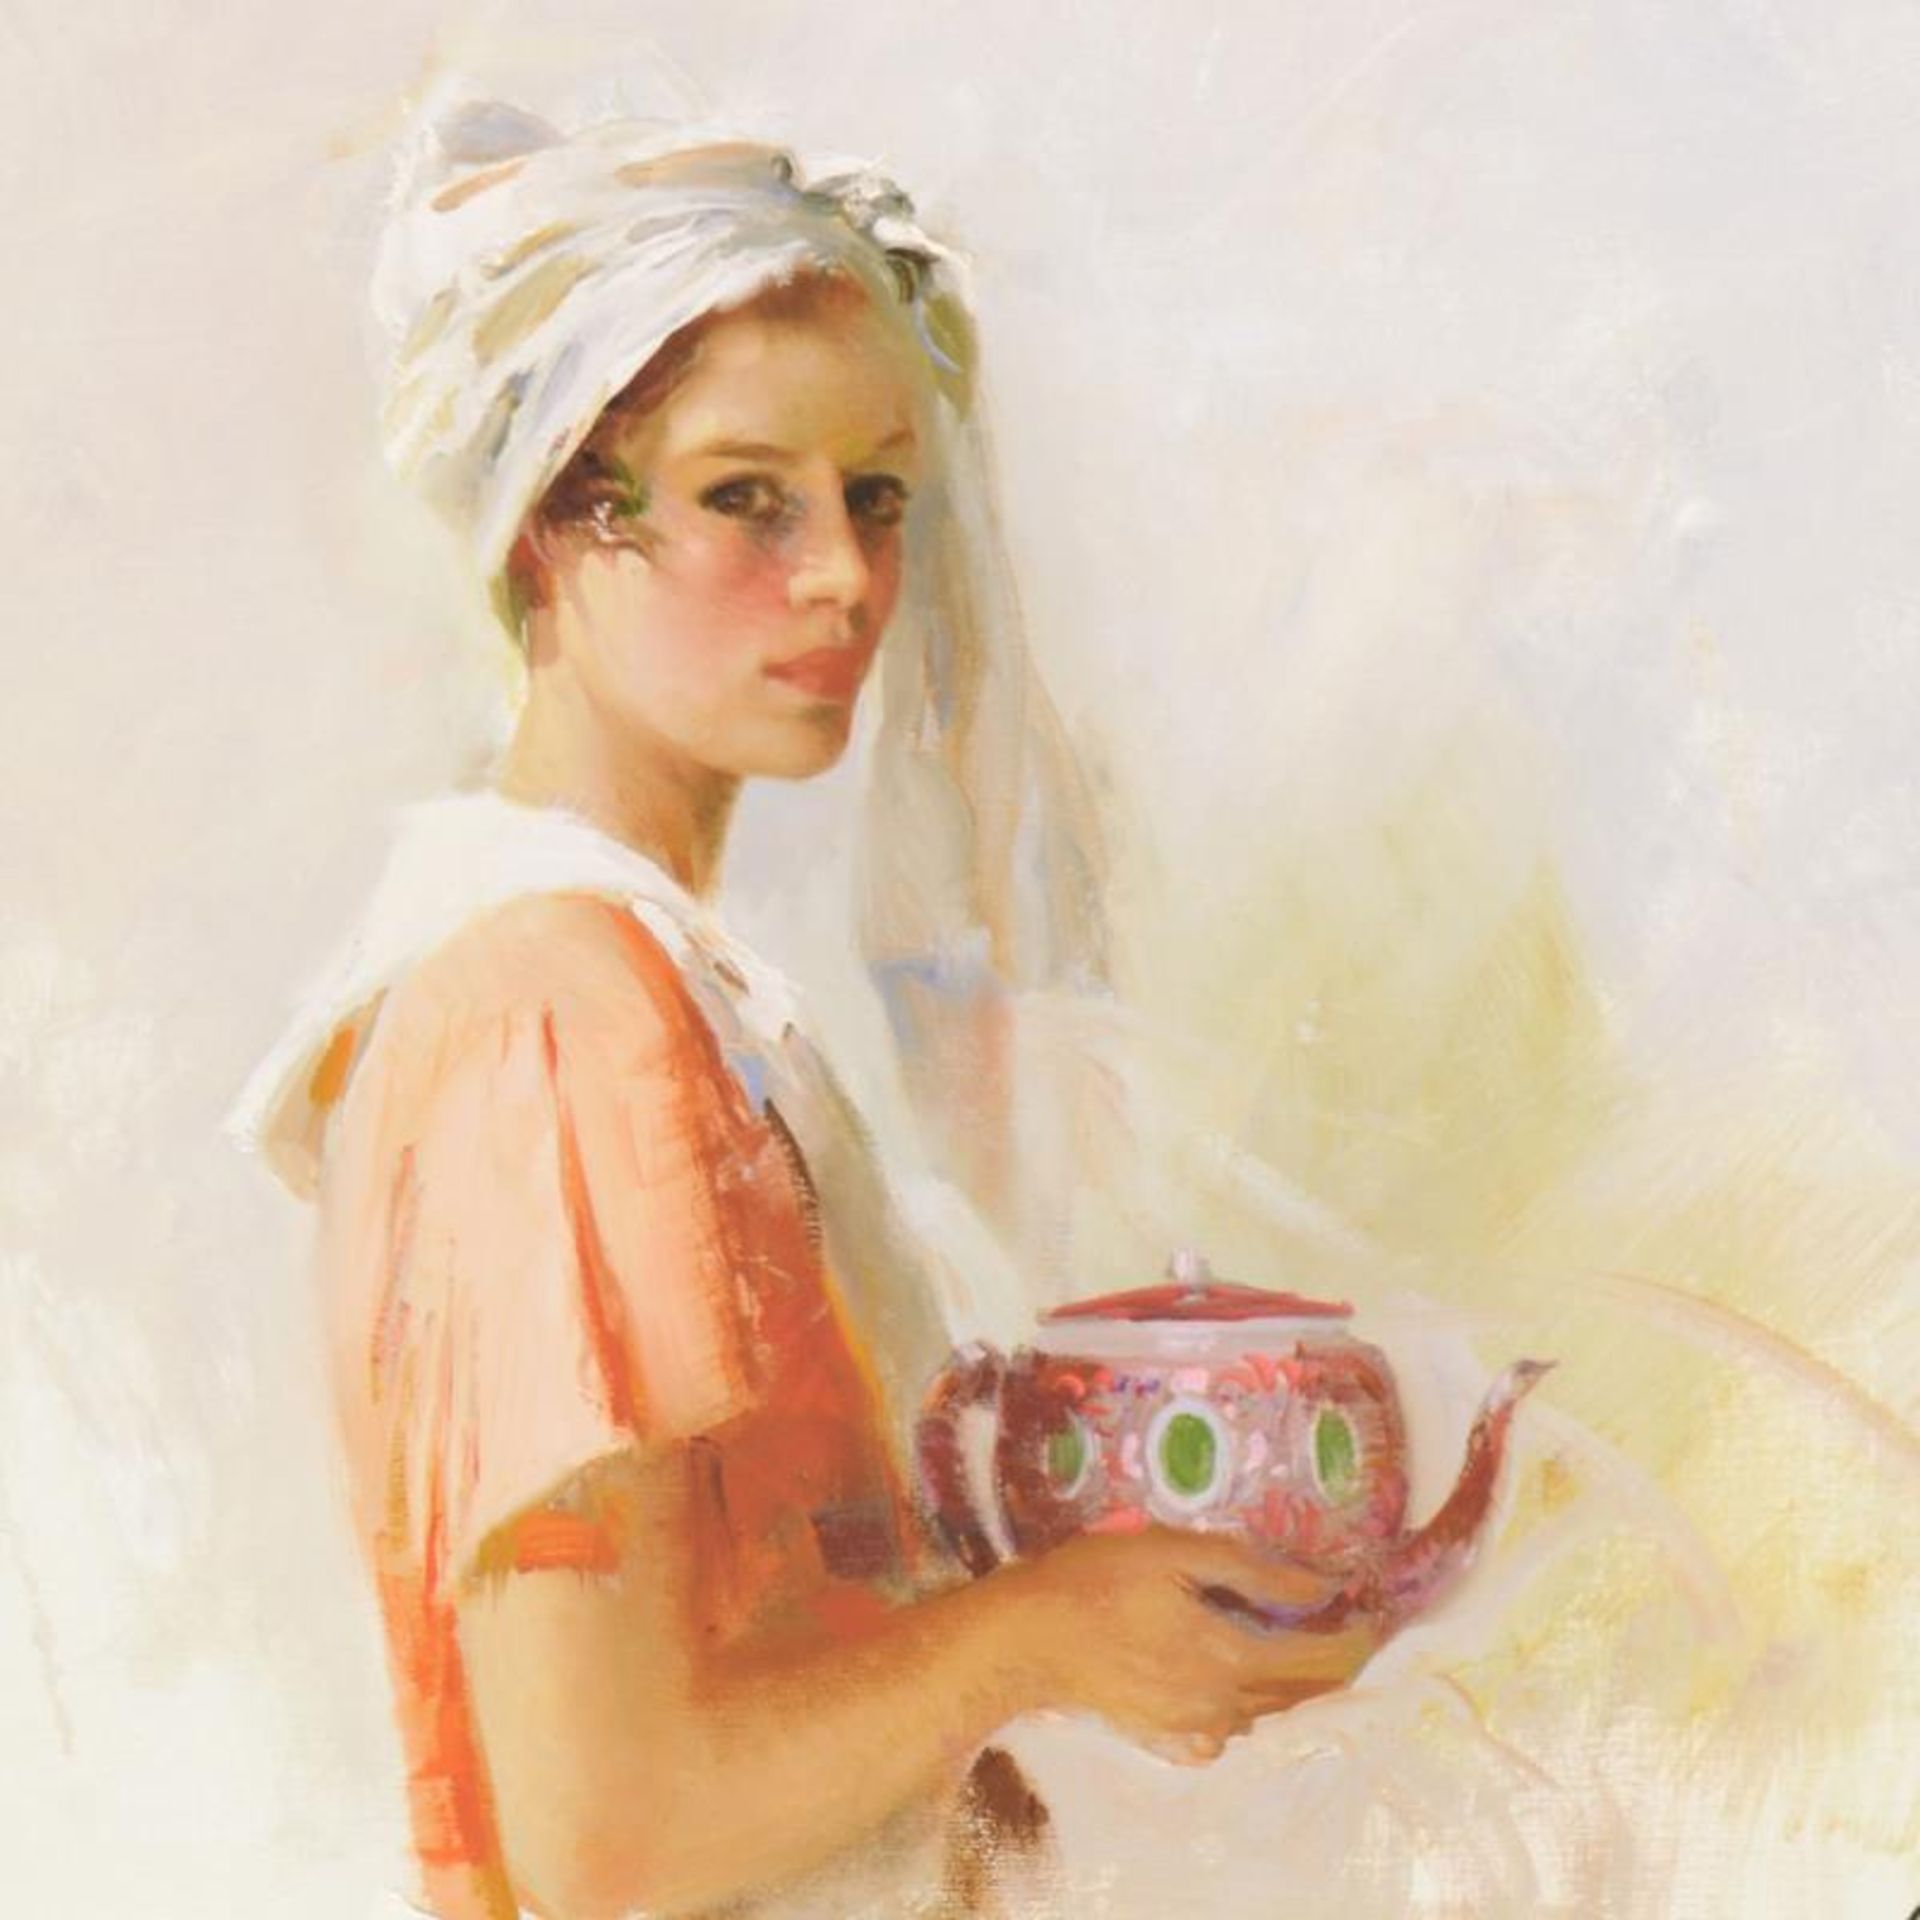 """Pino (1939-2010) """"The Gift"""" Limited Edition Giclee. Numbered and Hand Signed; Ce - Image 2 of 2"""